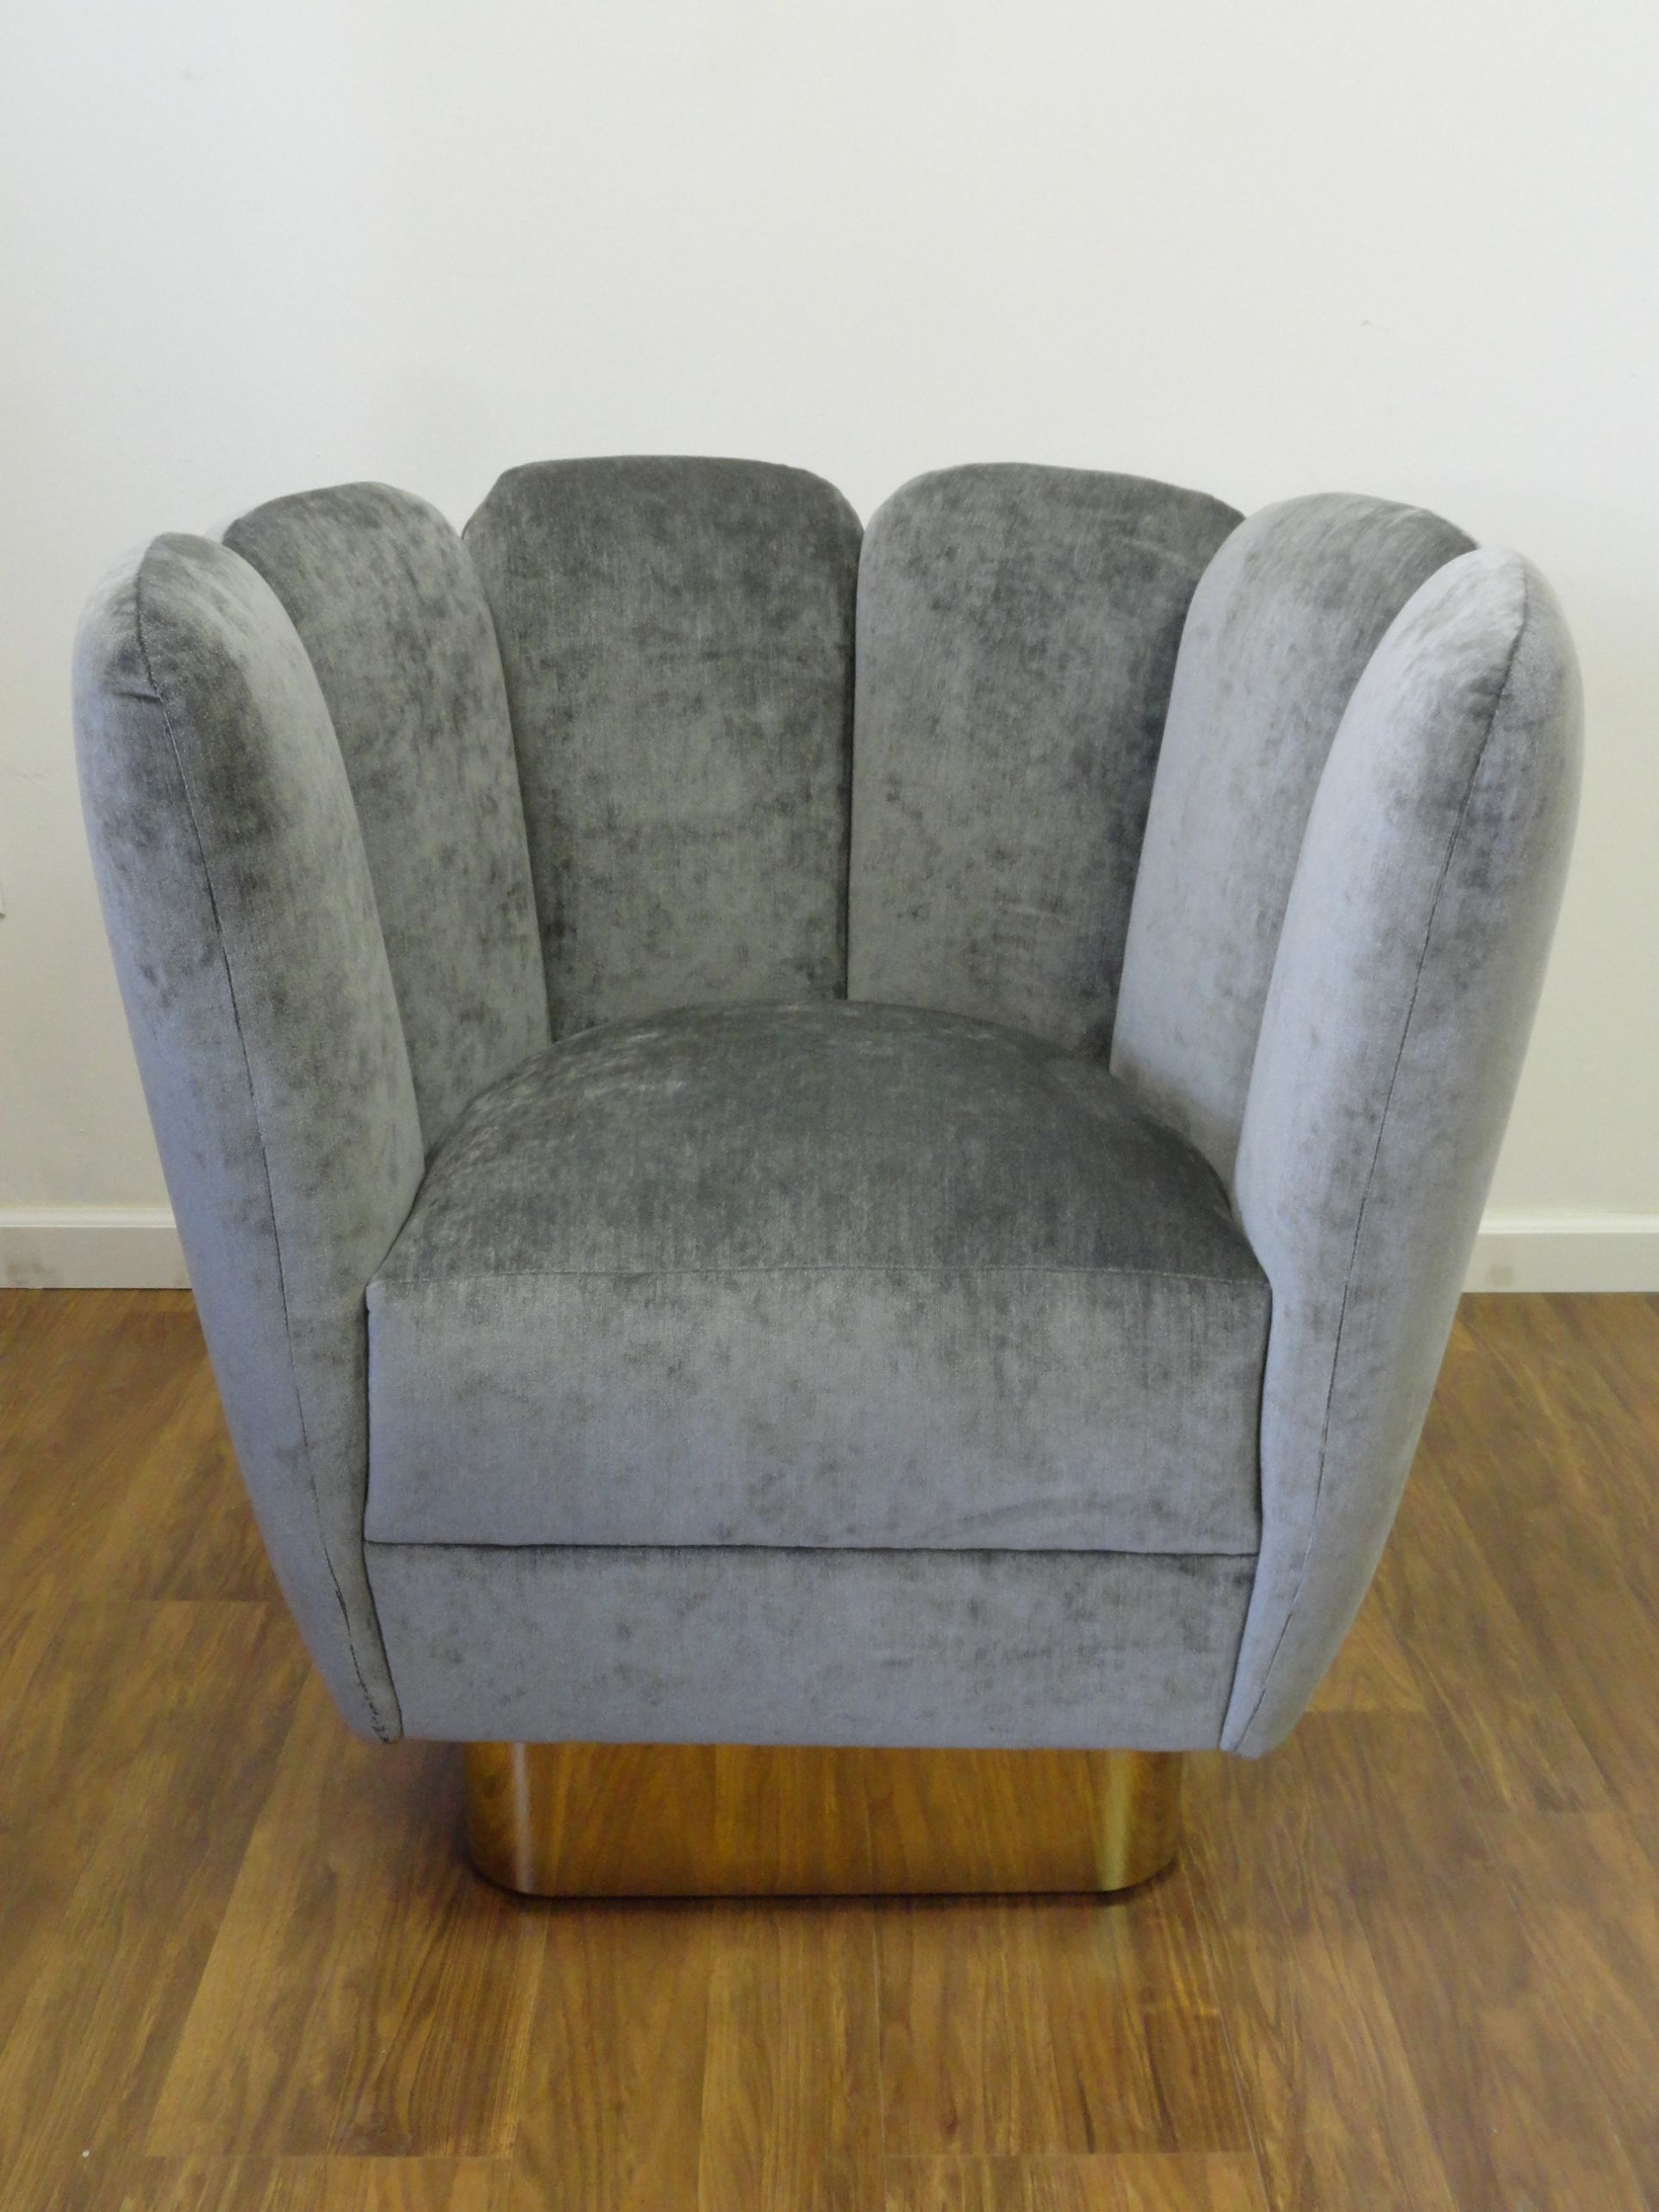 Scalloped Channel Back Swivel Chair with Brass Base and Slate